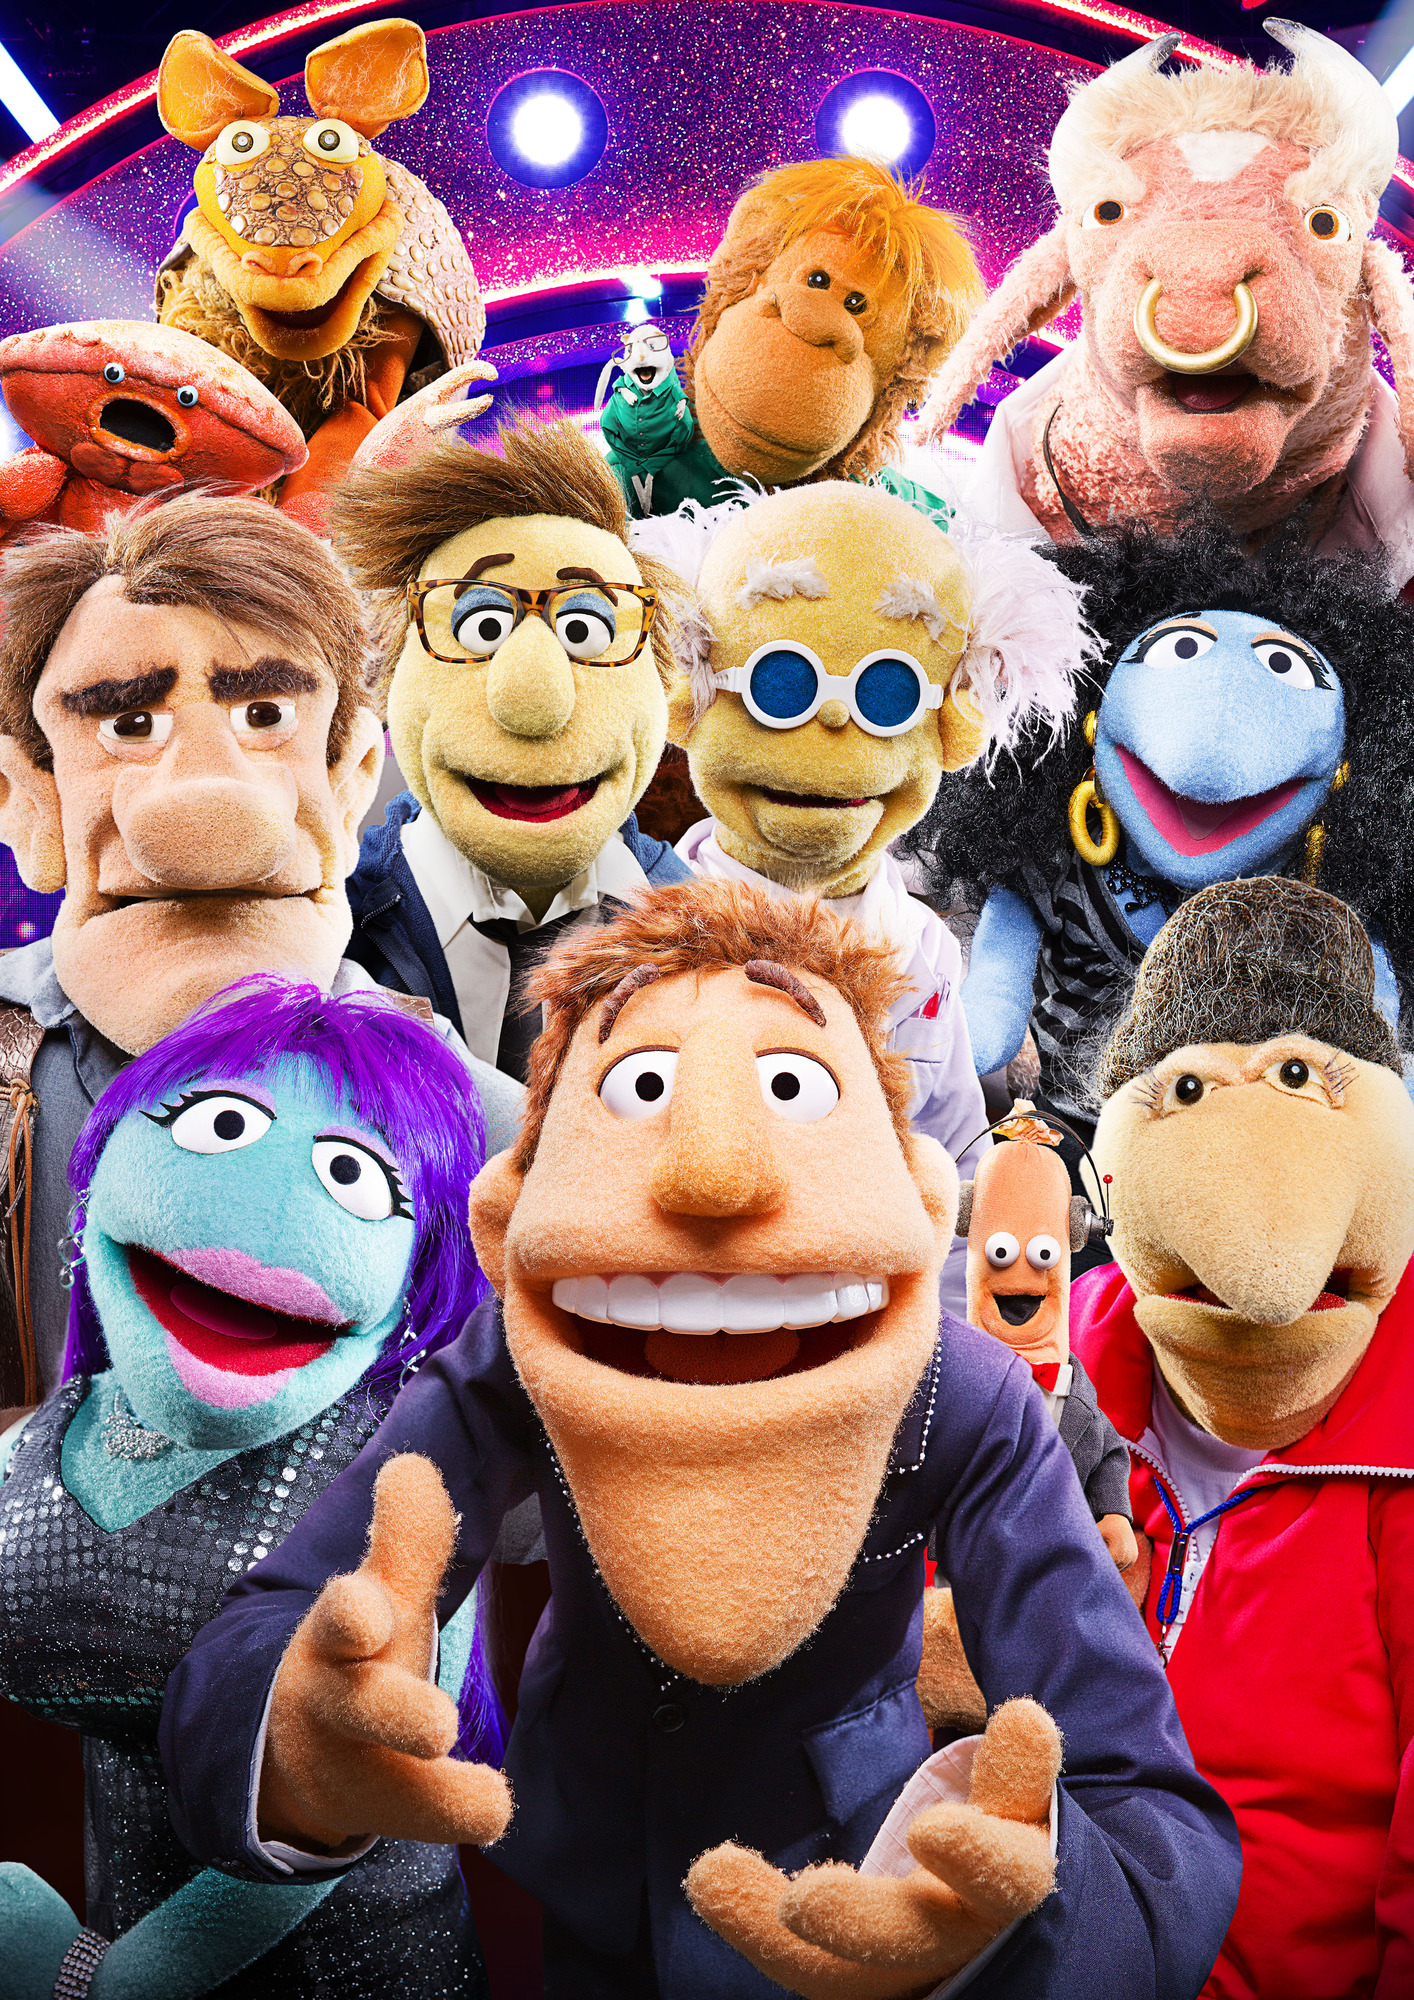 That Puppet Game Show on BBC1 pulls all the wrong strings